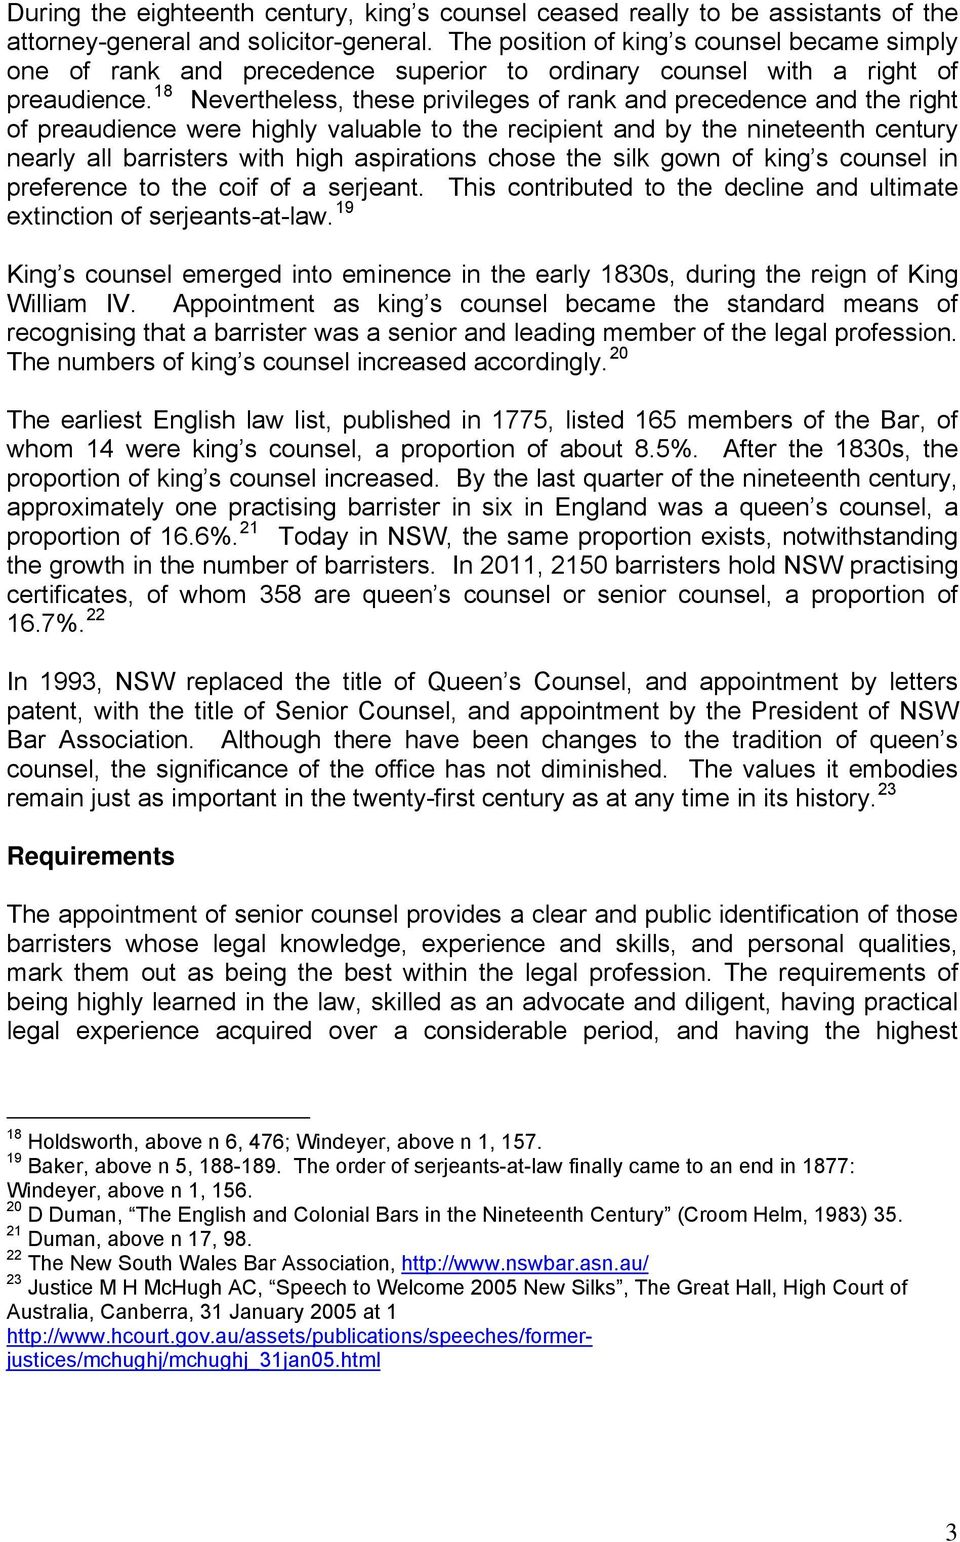 Senior Counsel: Recognition, Review, Requirements